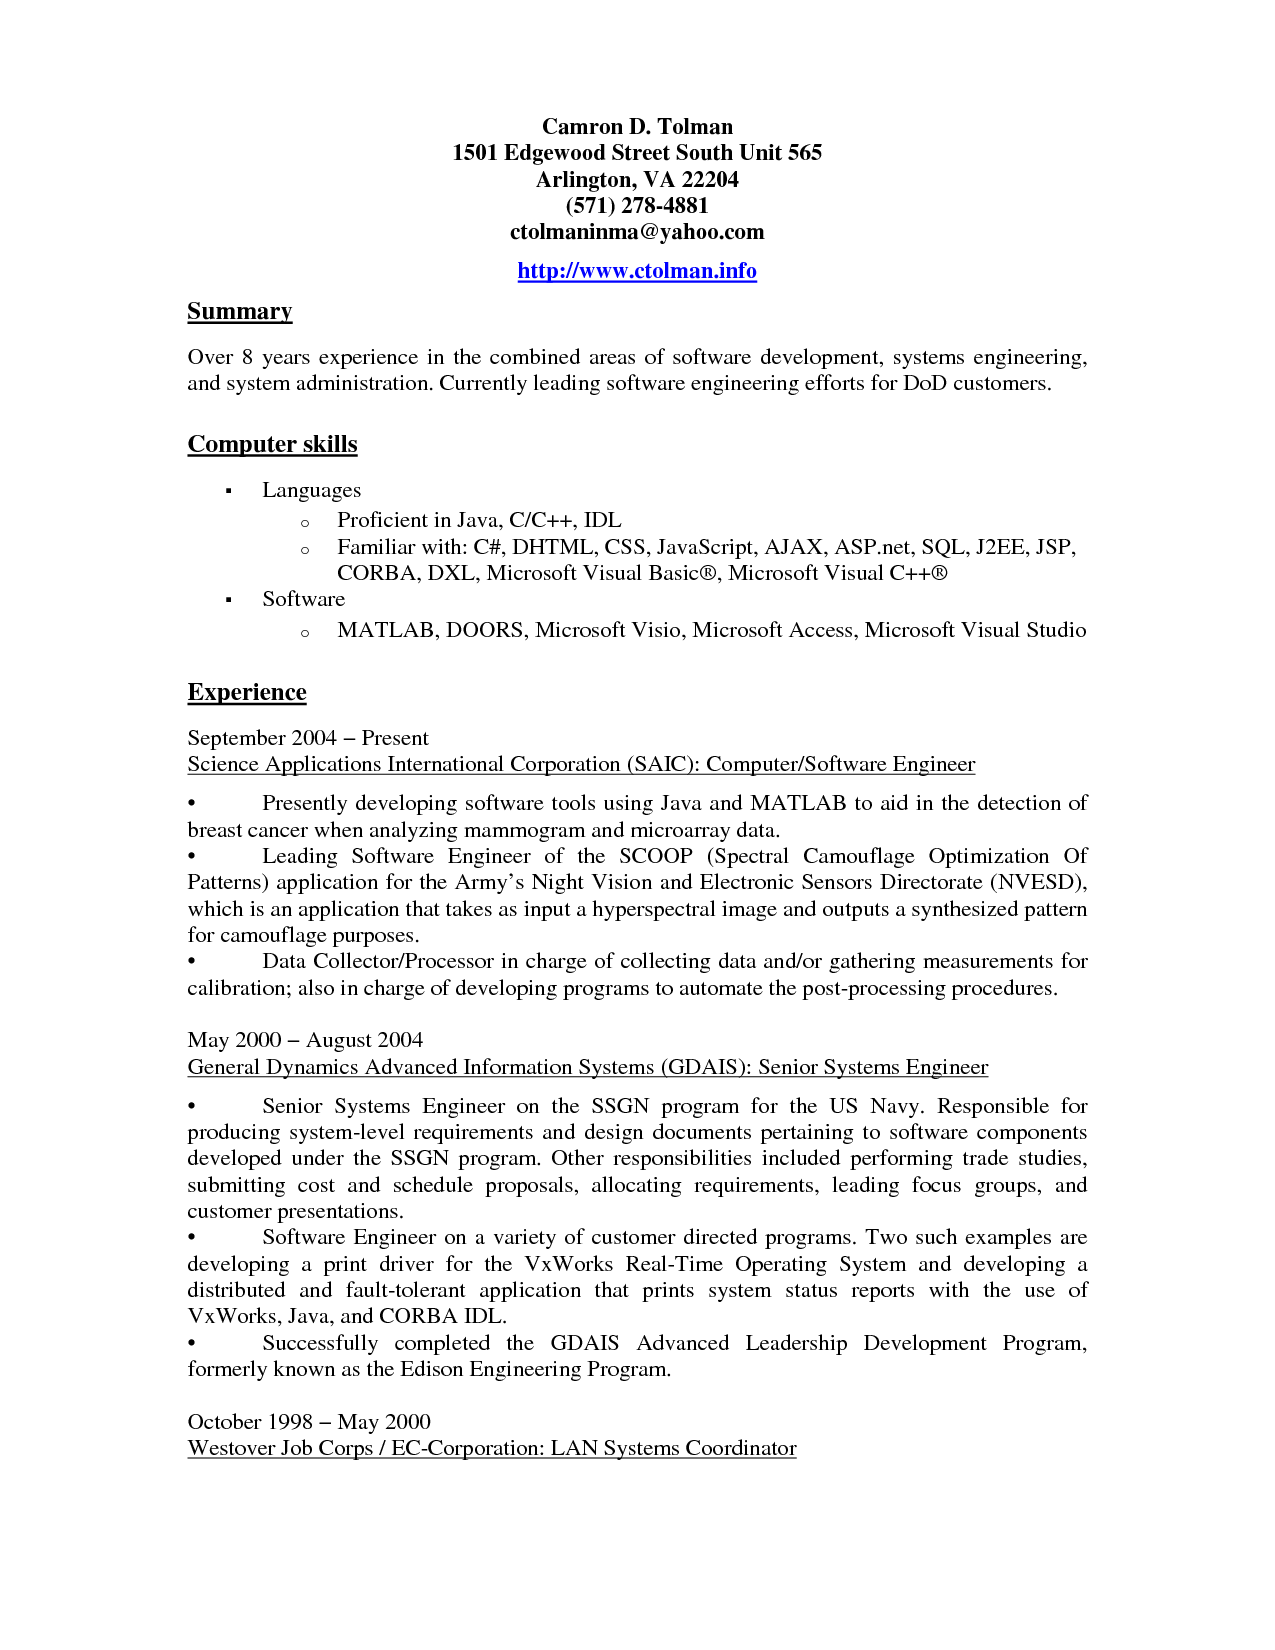 Summary For Resume Example Sample Undergraduate Research Assistant Resume Sampleĺ